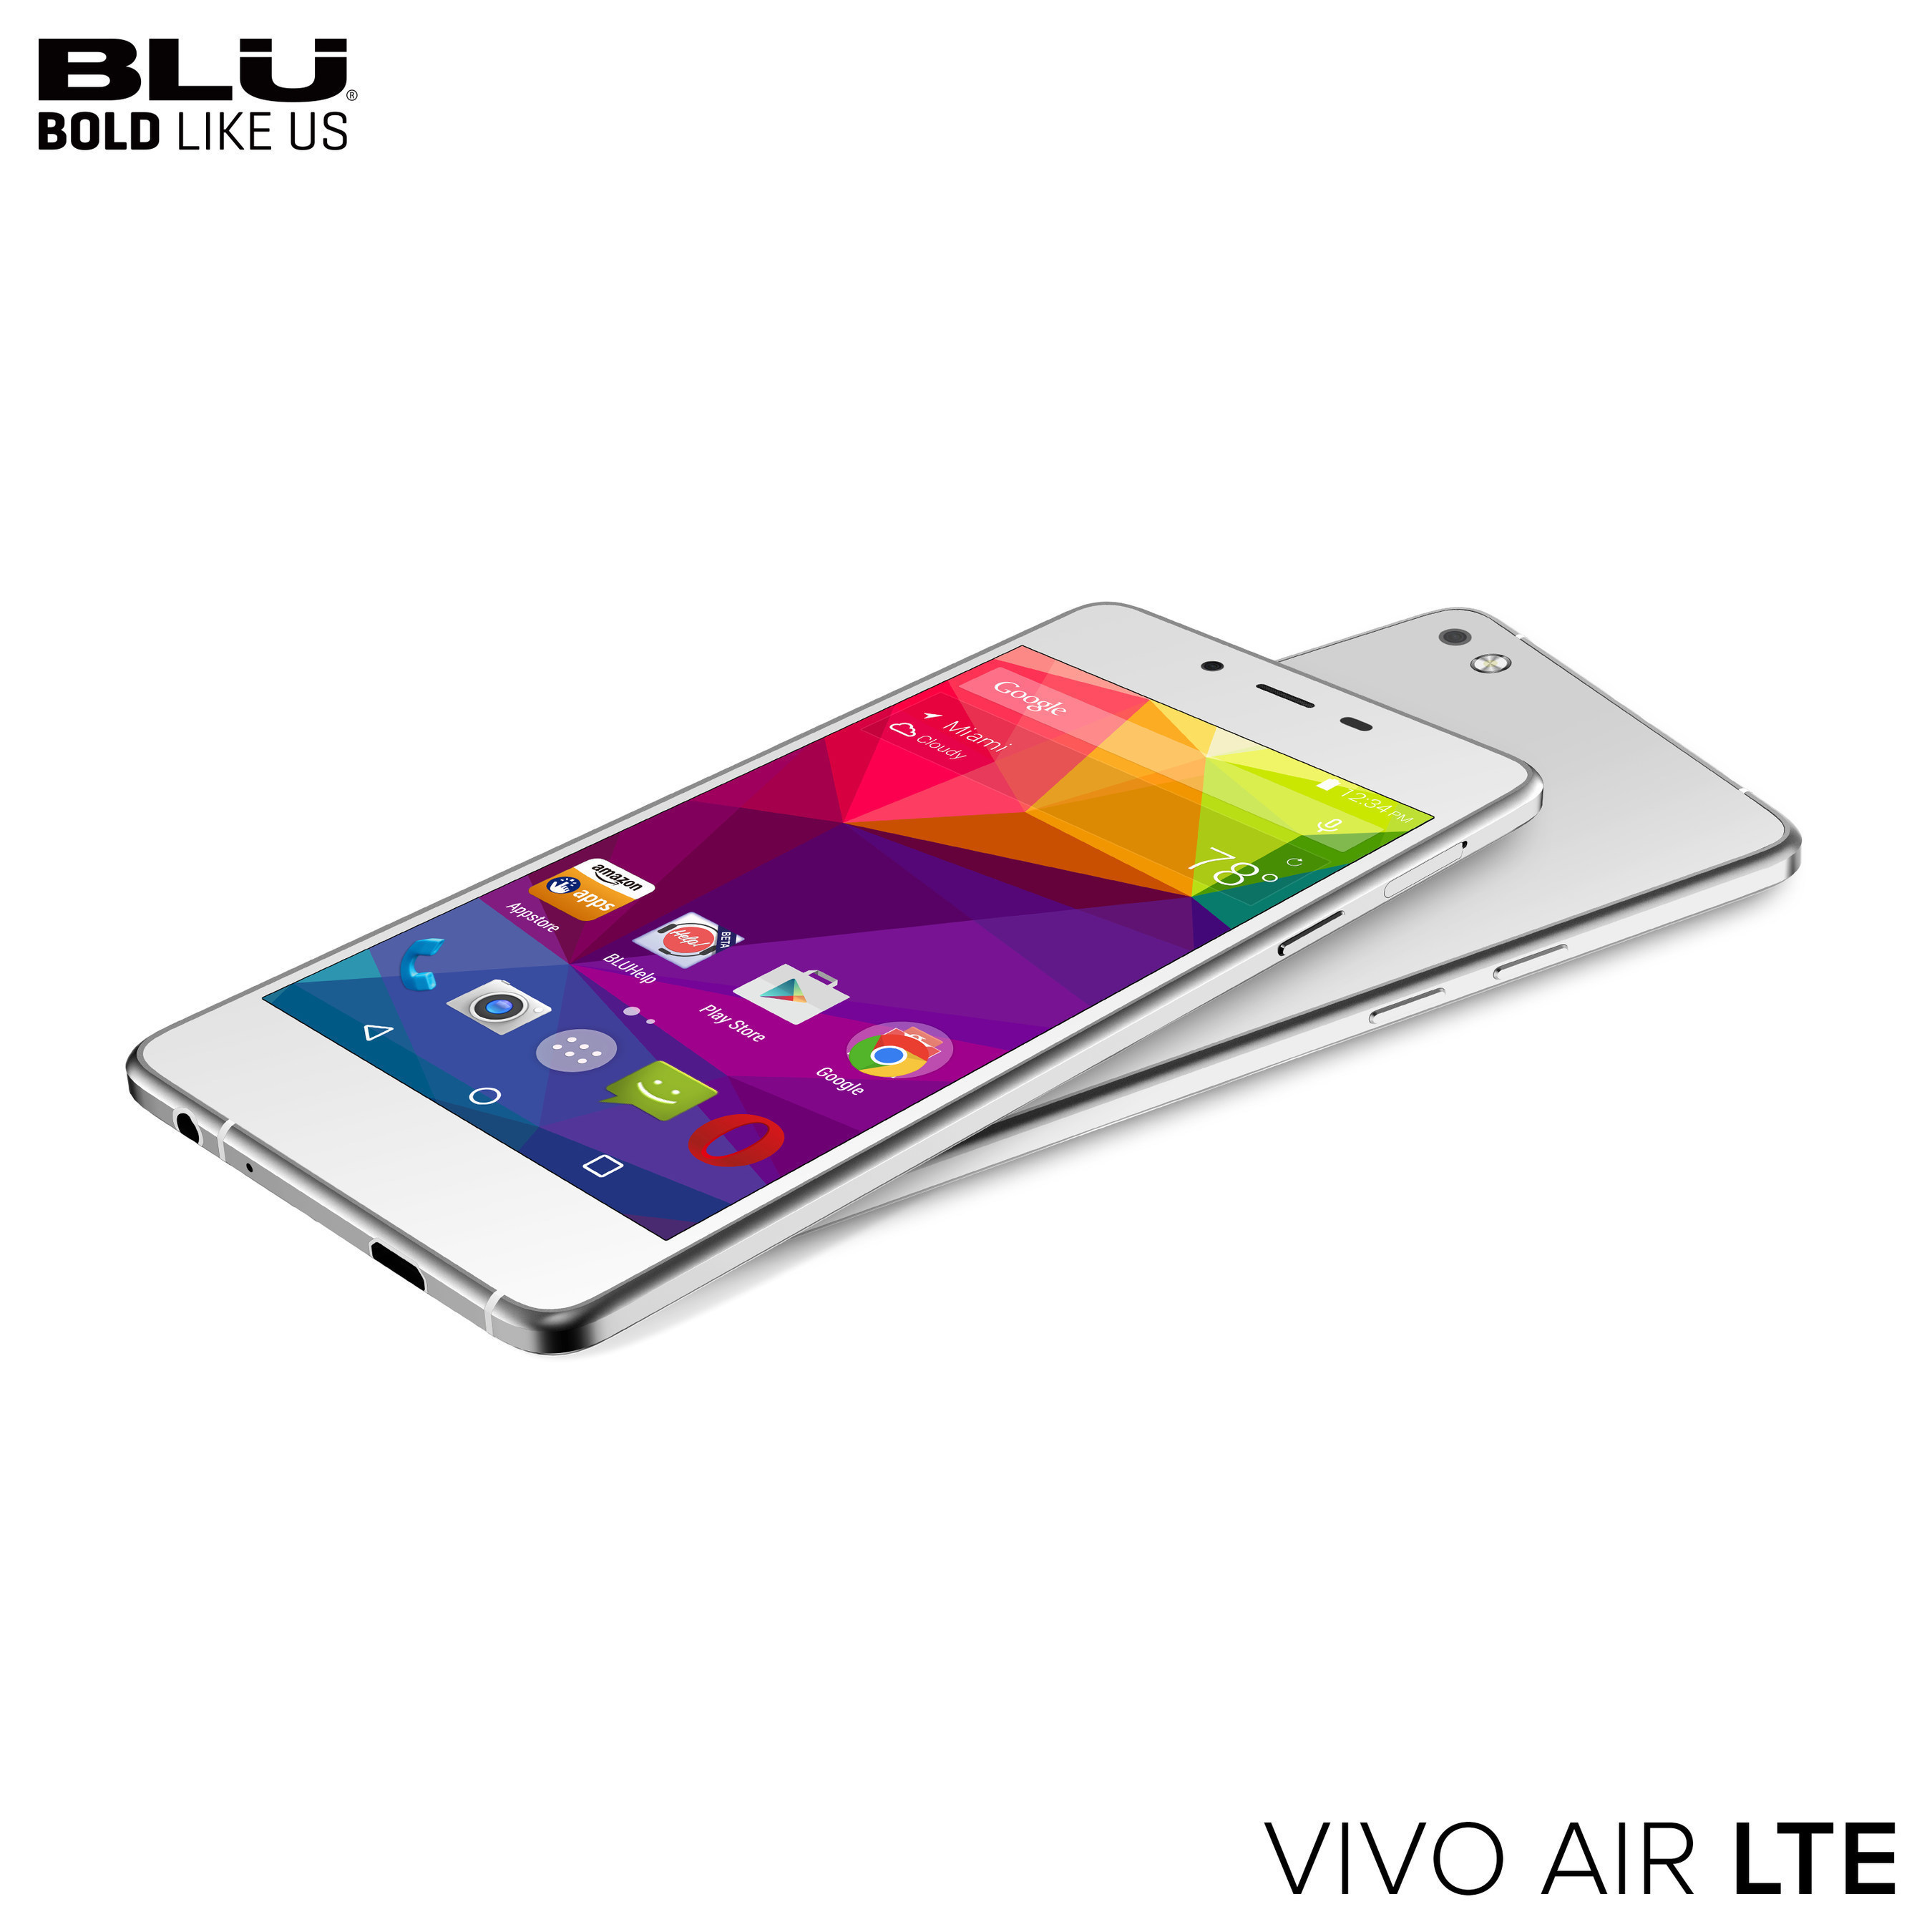 BLU Products Announces at CTIA Super Mobility in Las Vegas the Follow Up To Popular Vivo Air Series